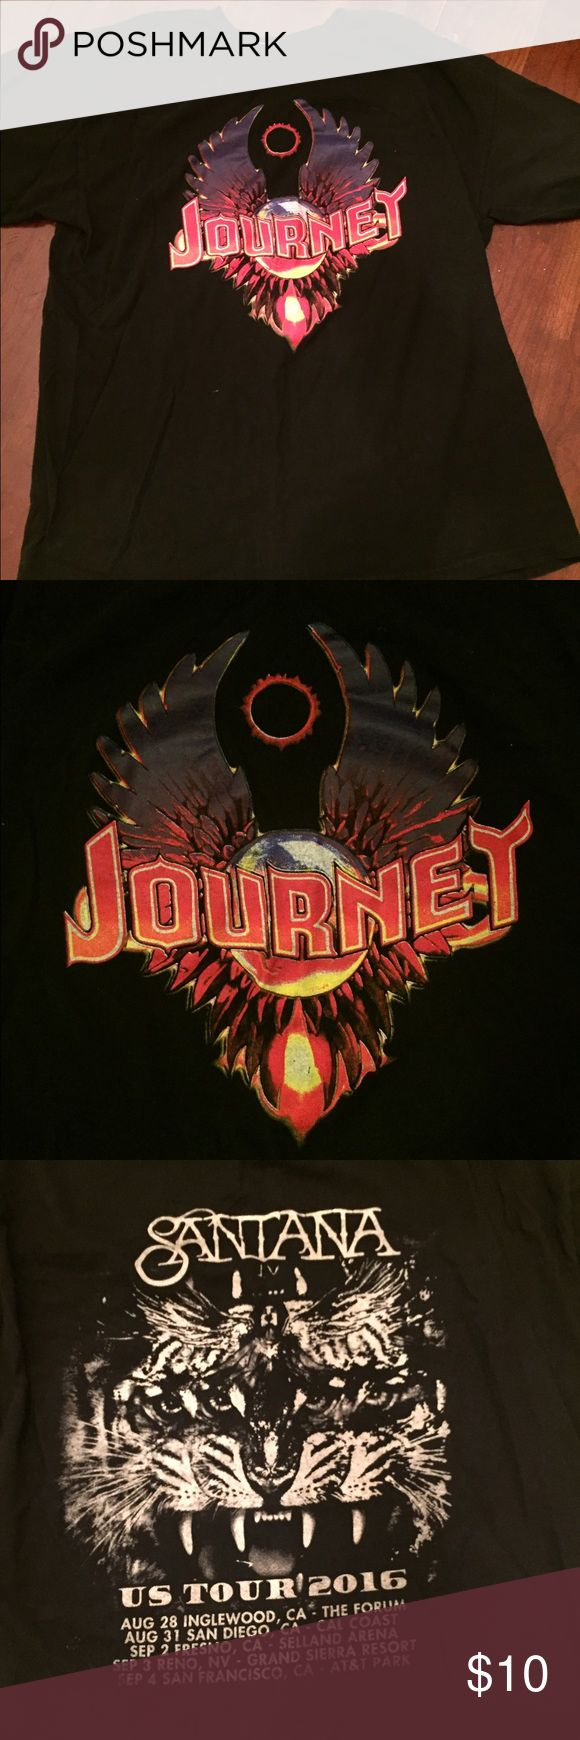 Journey/ Santana Tour T-Shirt This is a 2016 tour Tshirt from the Journey and Santana show at AT&T park last summer. It could be a great shirt to cut up and make into a tank top or a fringe top for Coachella! Tops Tees - Short Sleeve